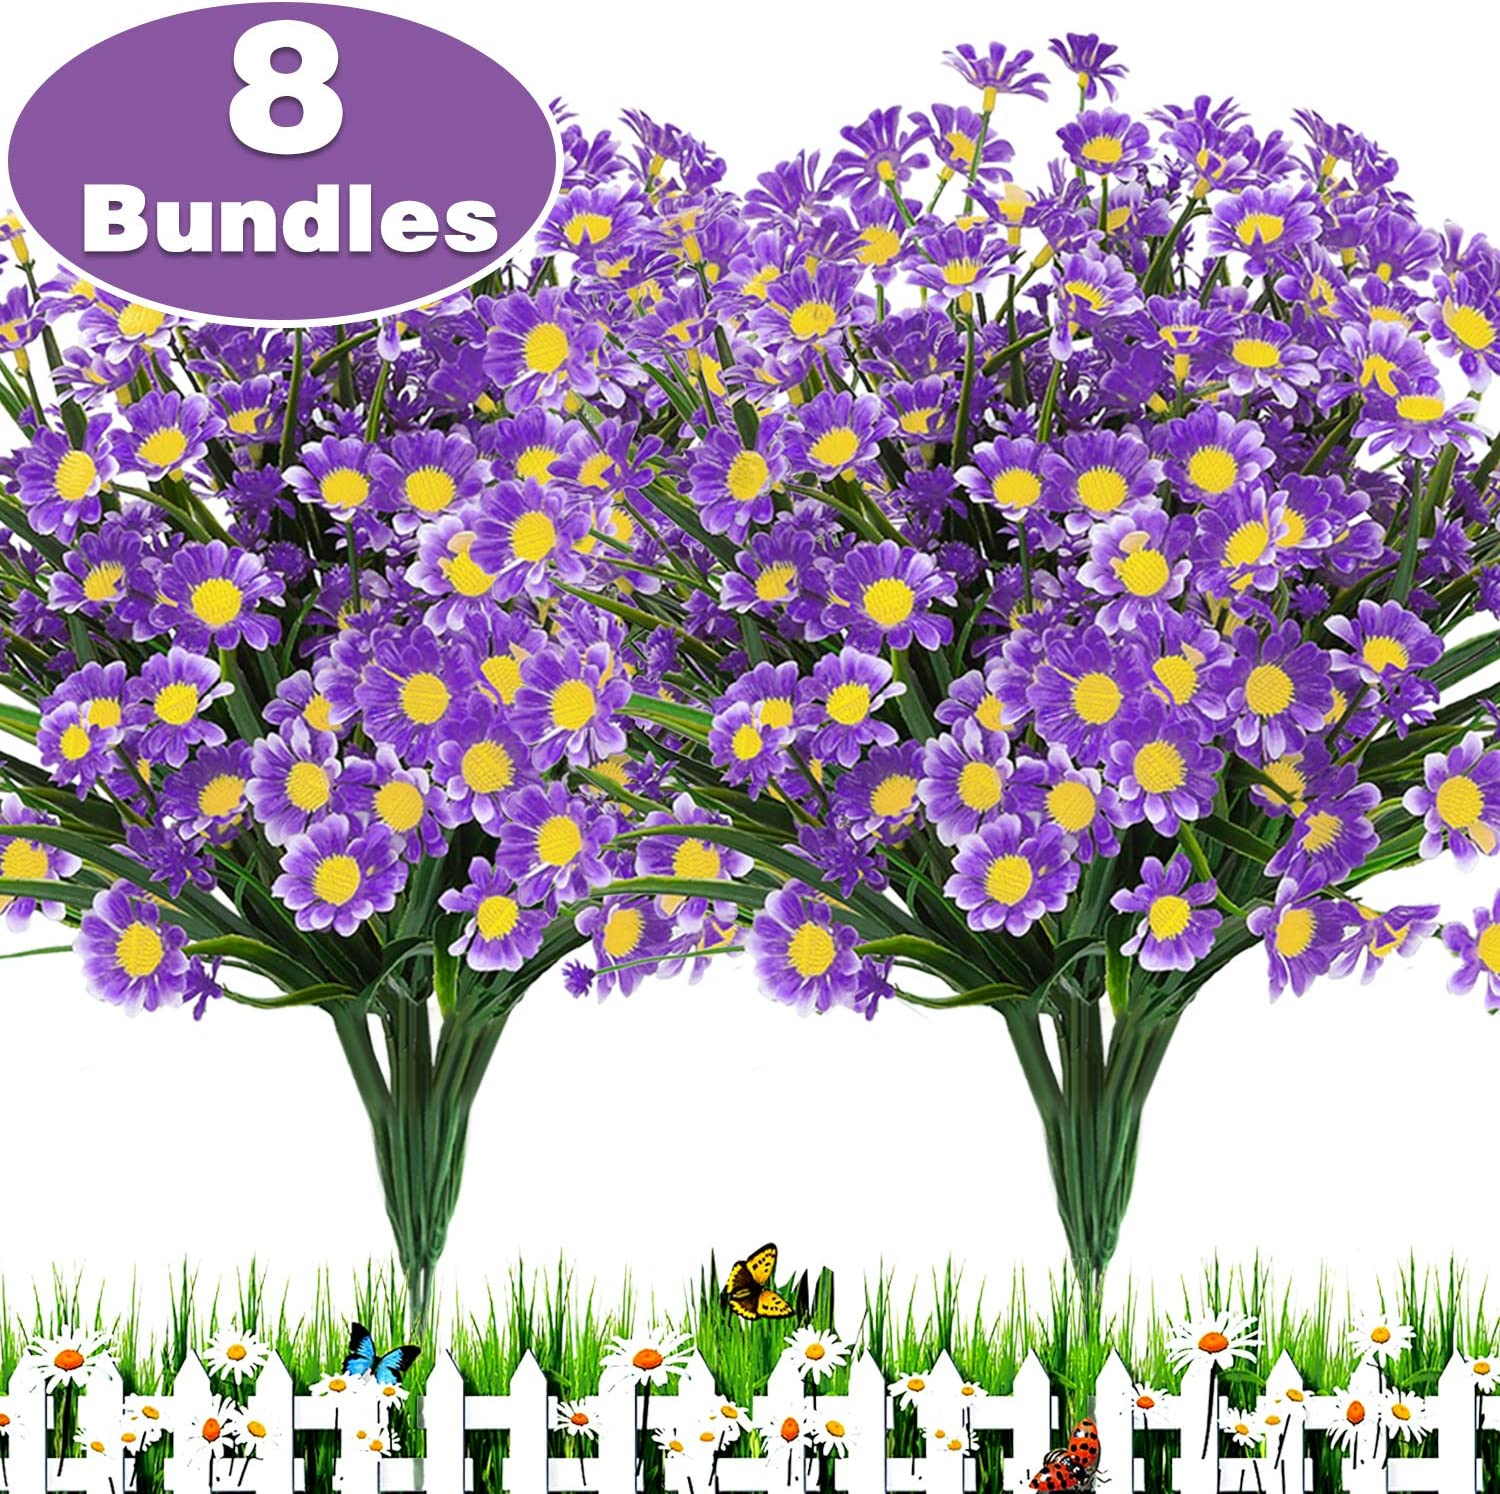 TURNMEON 8 Bundles Artificial Flowers UV Resistant Outdoor Decoration-Faux Plastic Daisy Greenery Shrub Plant Indoor Outside Hanging Planter Wedding Home Garden Office Window Box Hanging Décor(Purple)